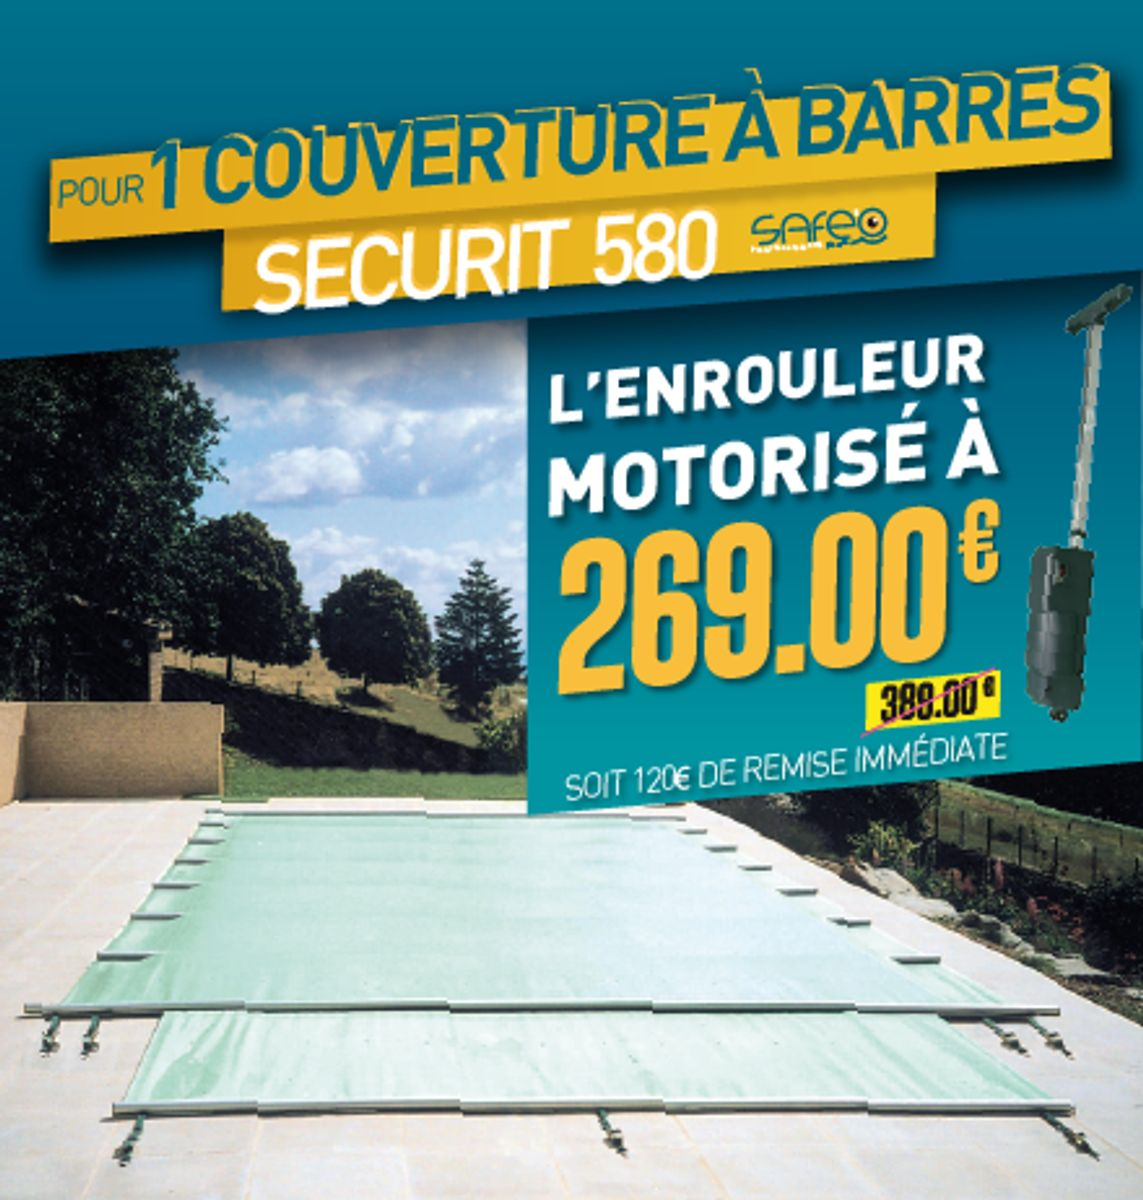 COUVERTURE A BARRES SECURIT 580